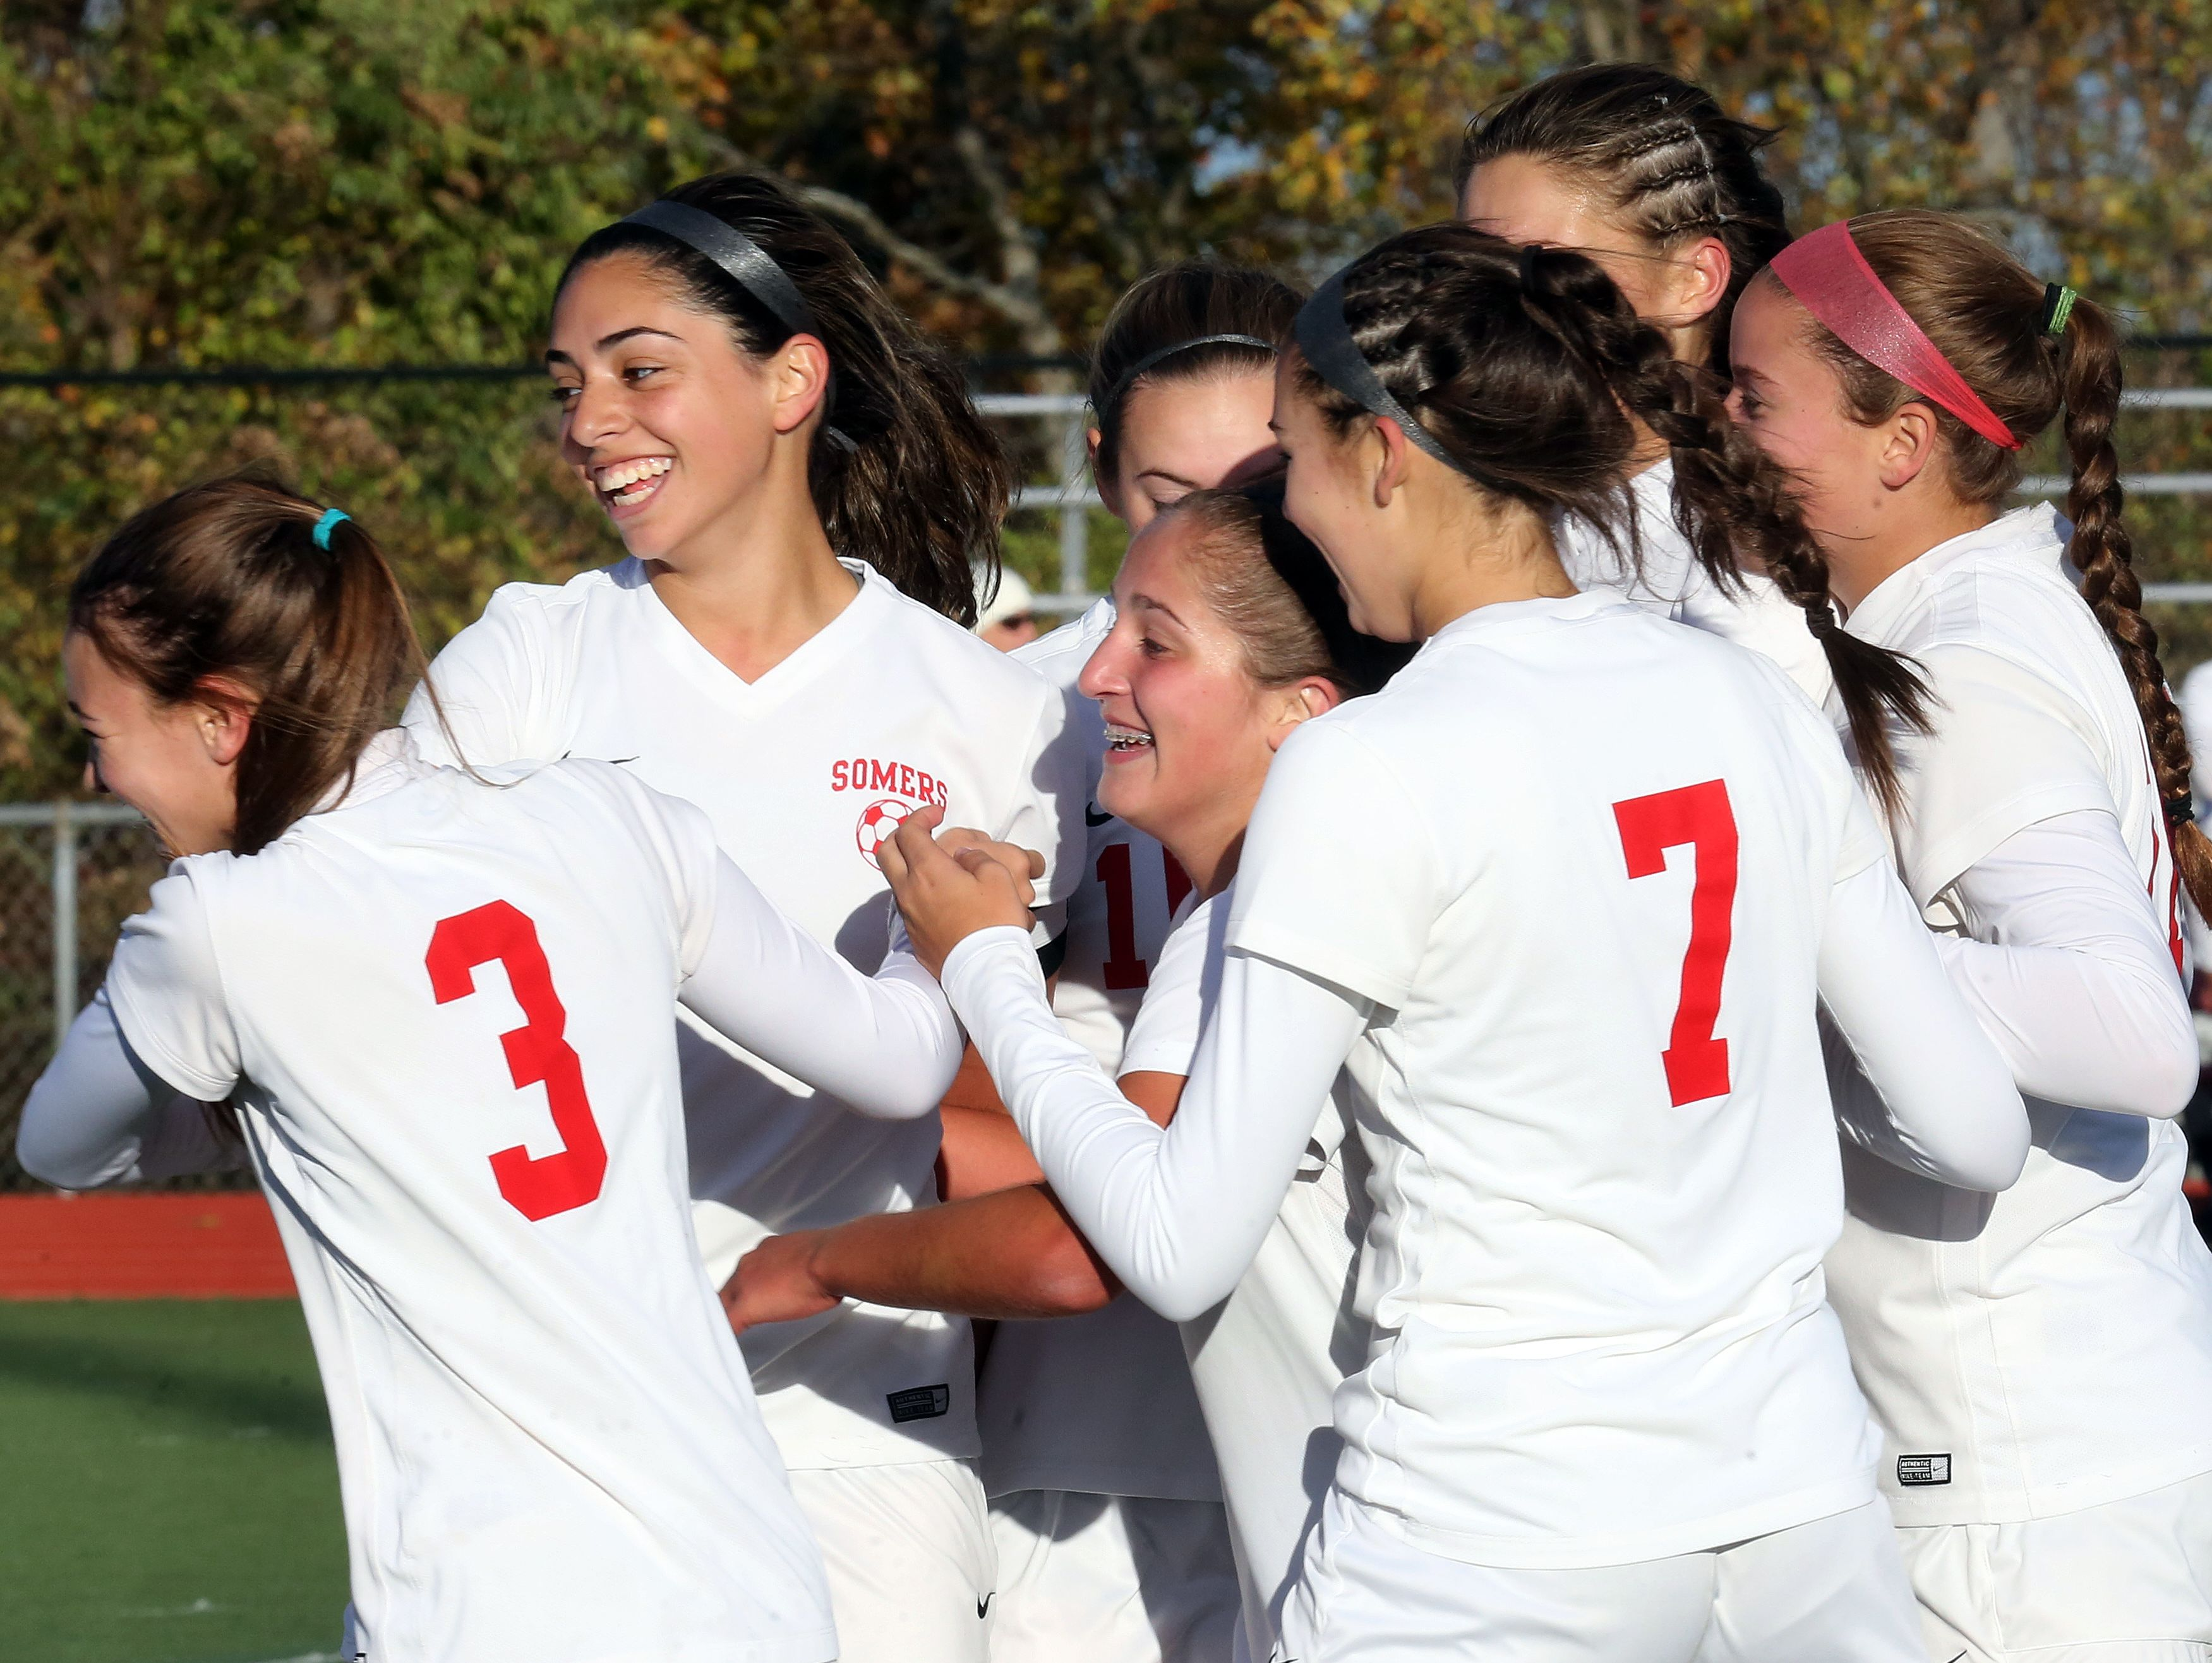 Somers Ciara Ostrander (4) celebrates scoring with her teammates during Section 1 Class A girls soccer semifinal at Somers High School on Oct. 28, 2016. Somers defeats John Jay Cross River 4-2.